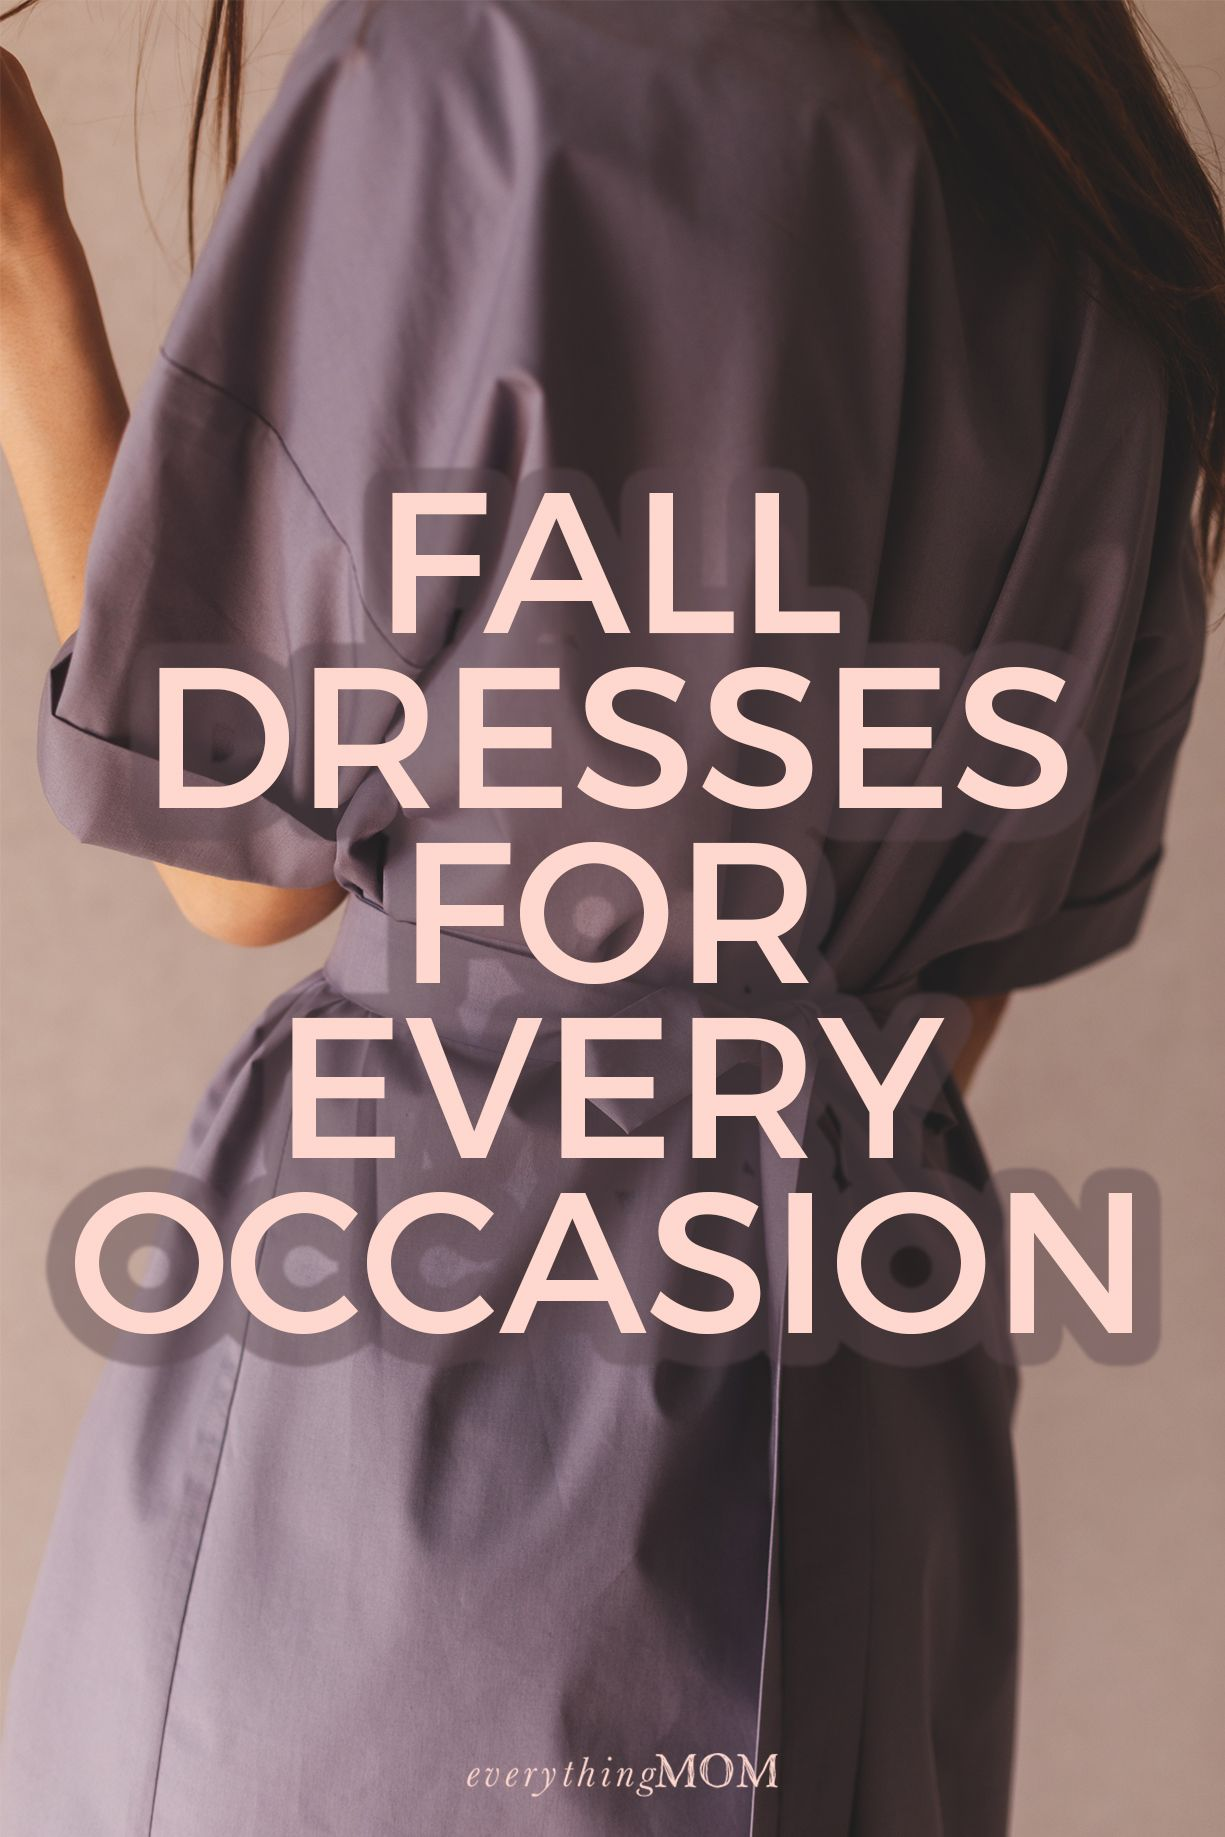 Fall Dresses for Every Occasion Fall dresses, Fashion